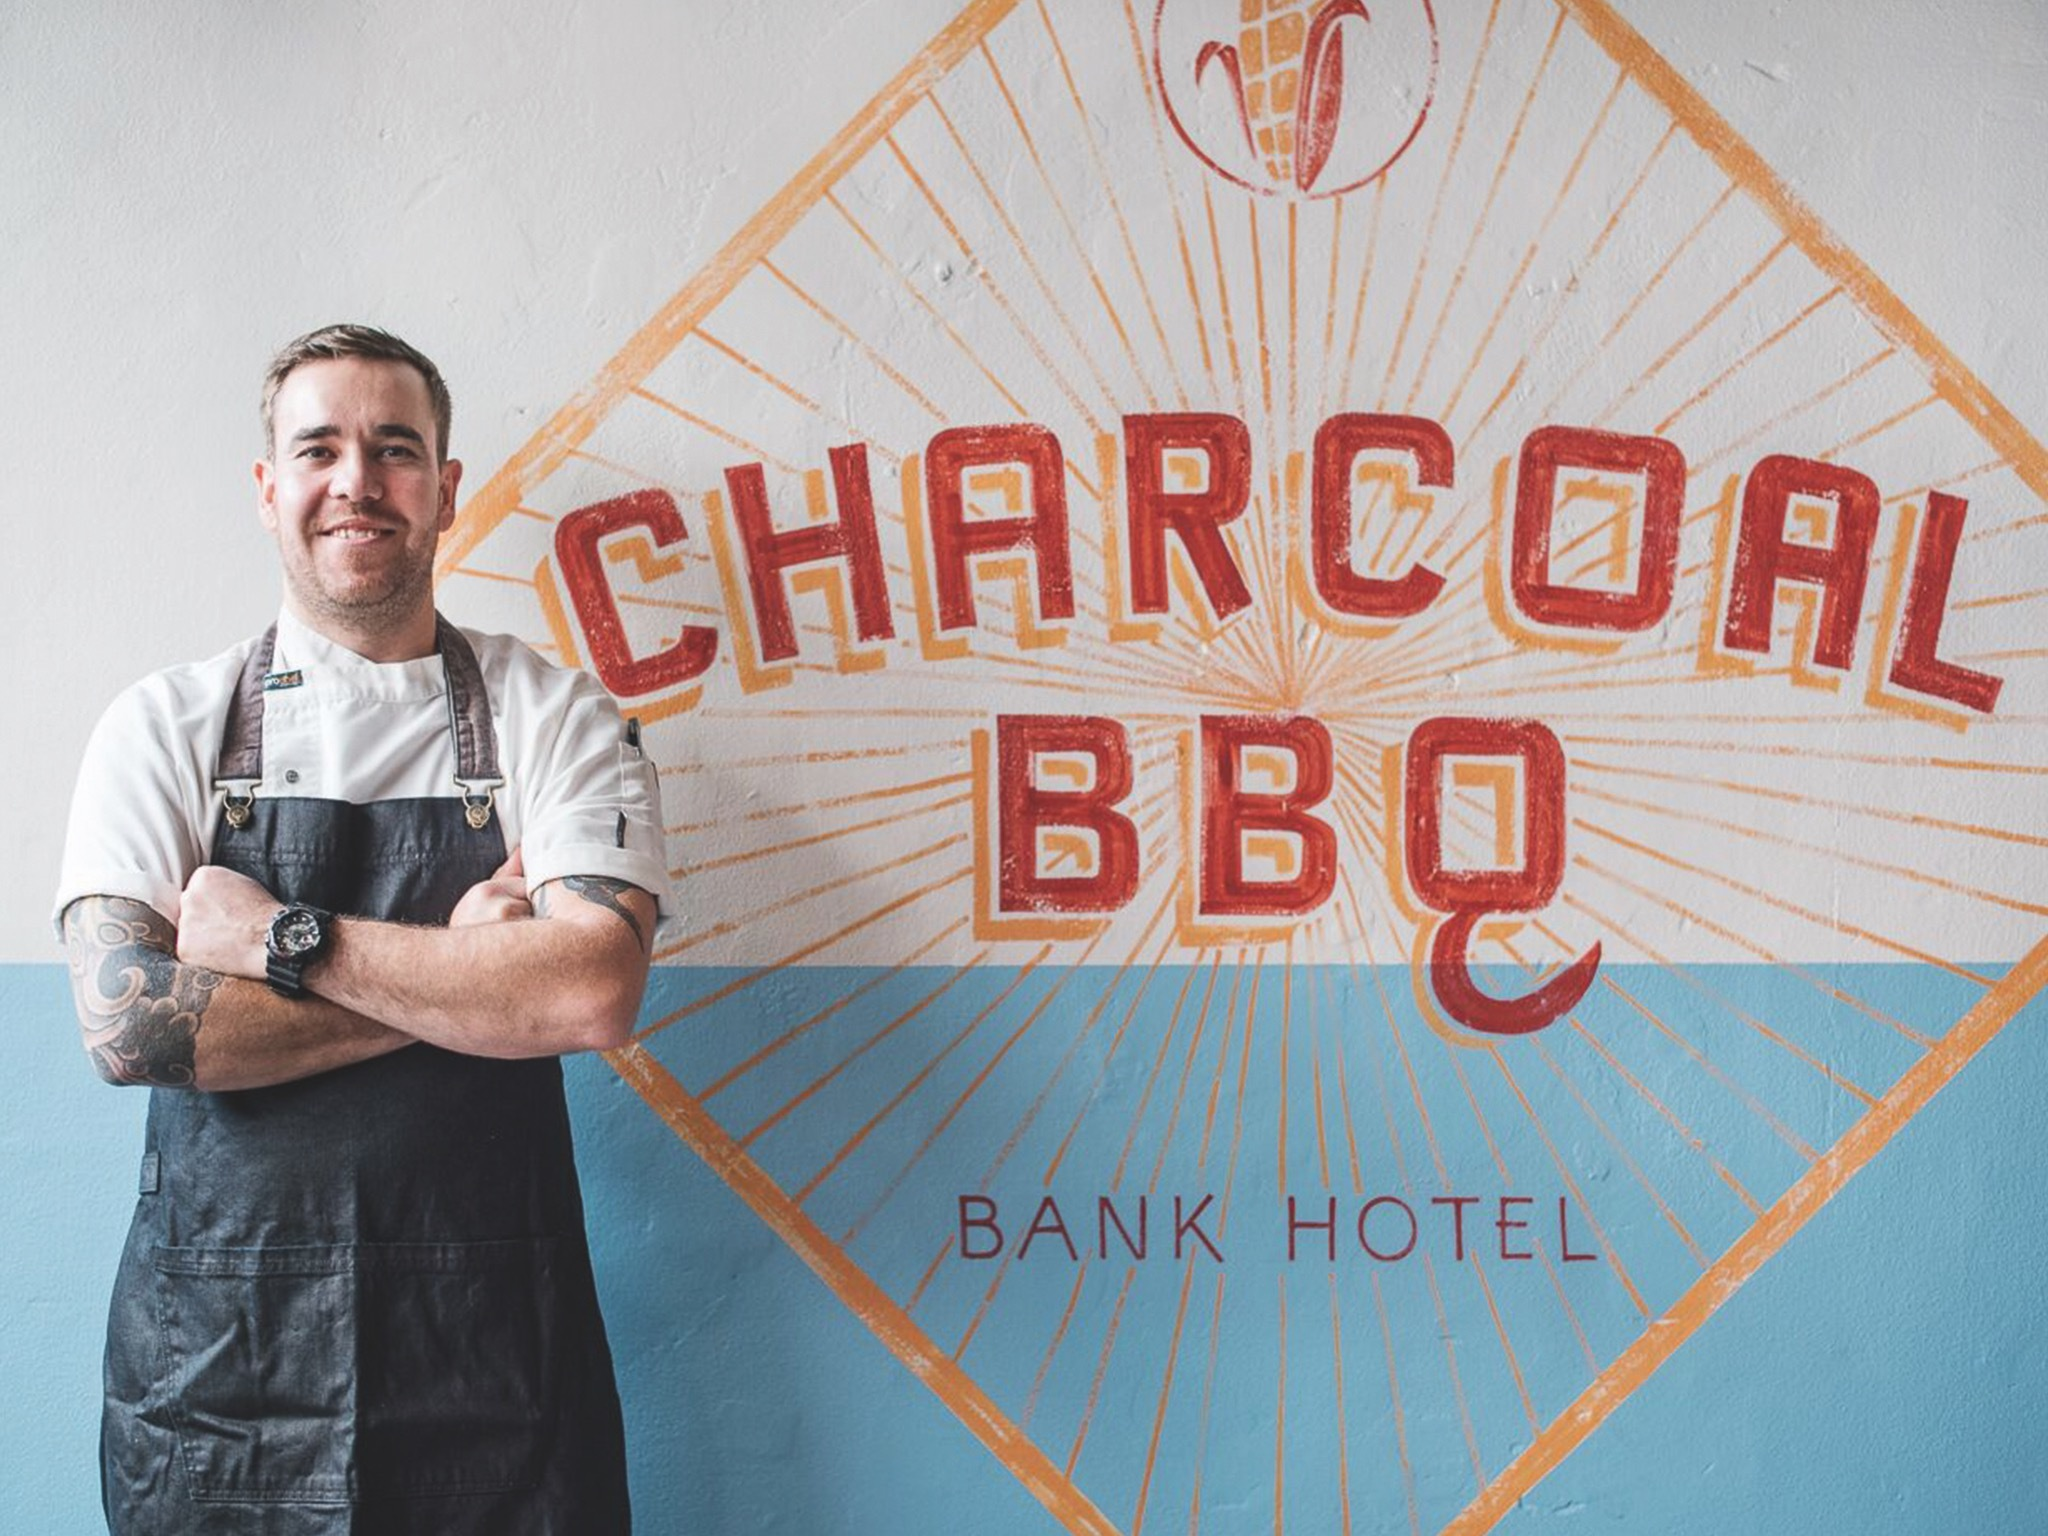 The Bank Hotel gets a charcoal barbecue